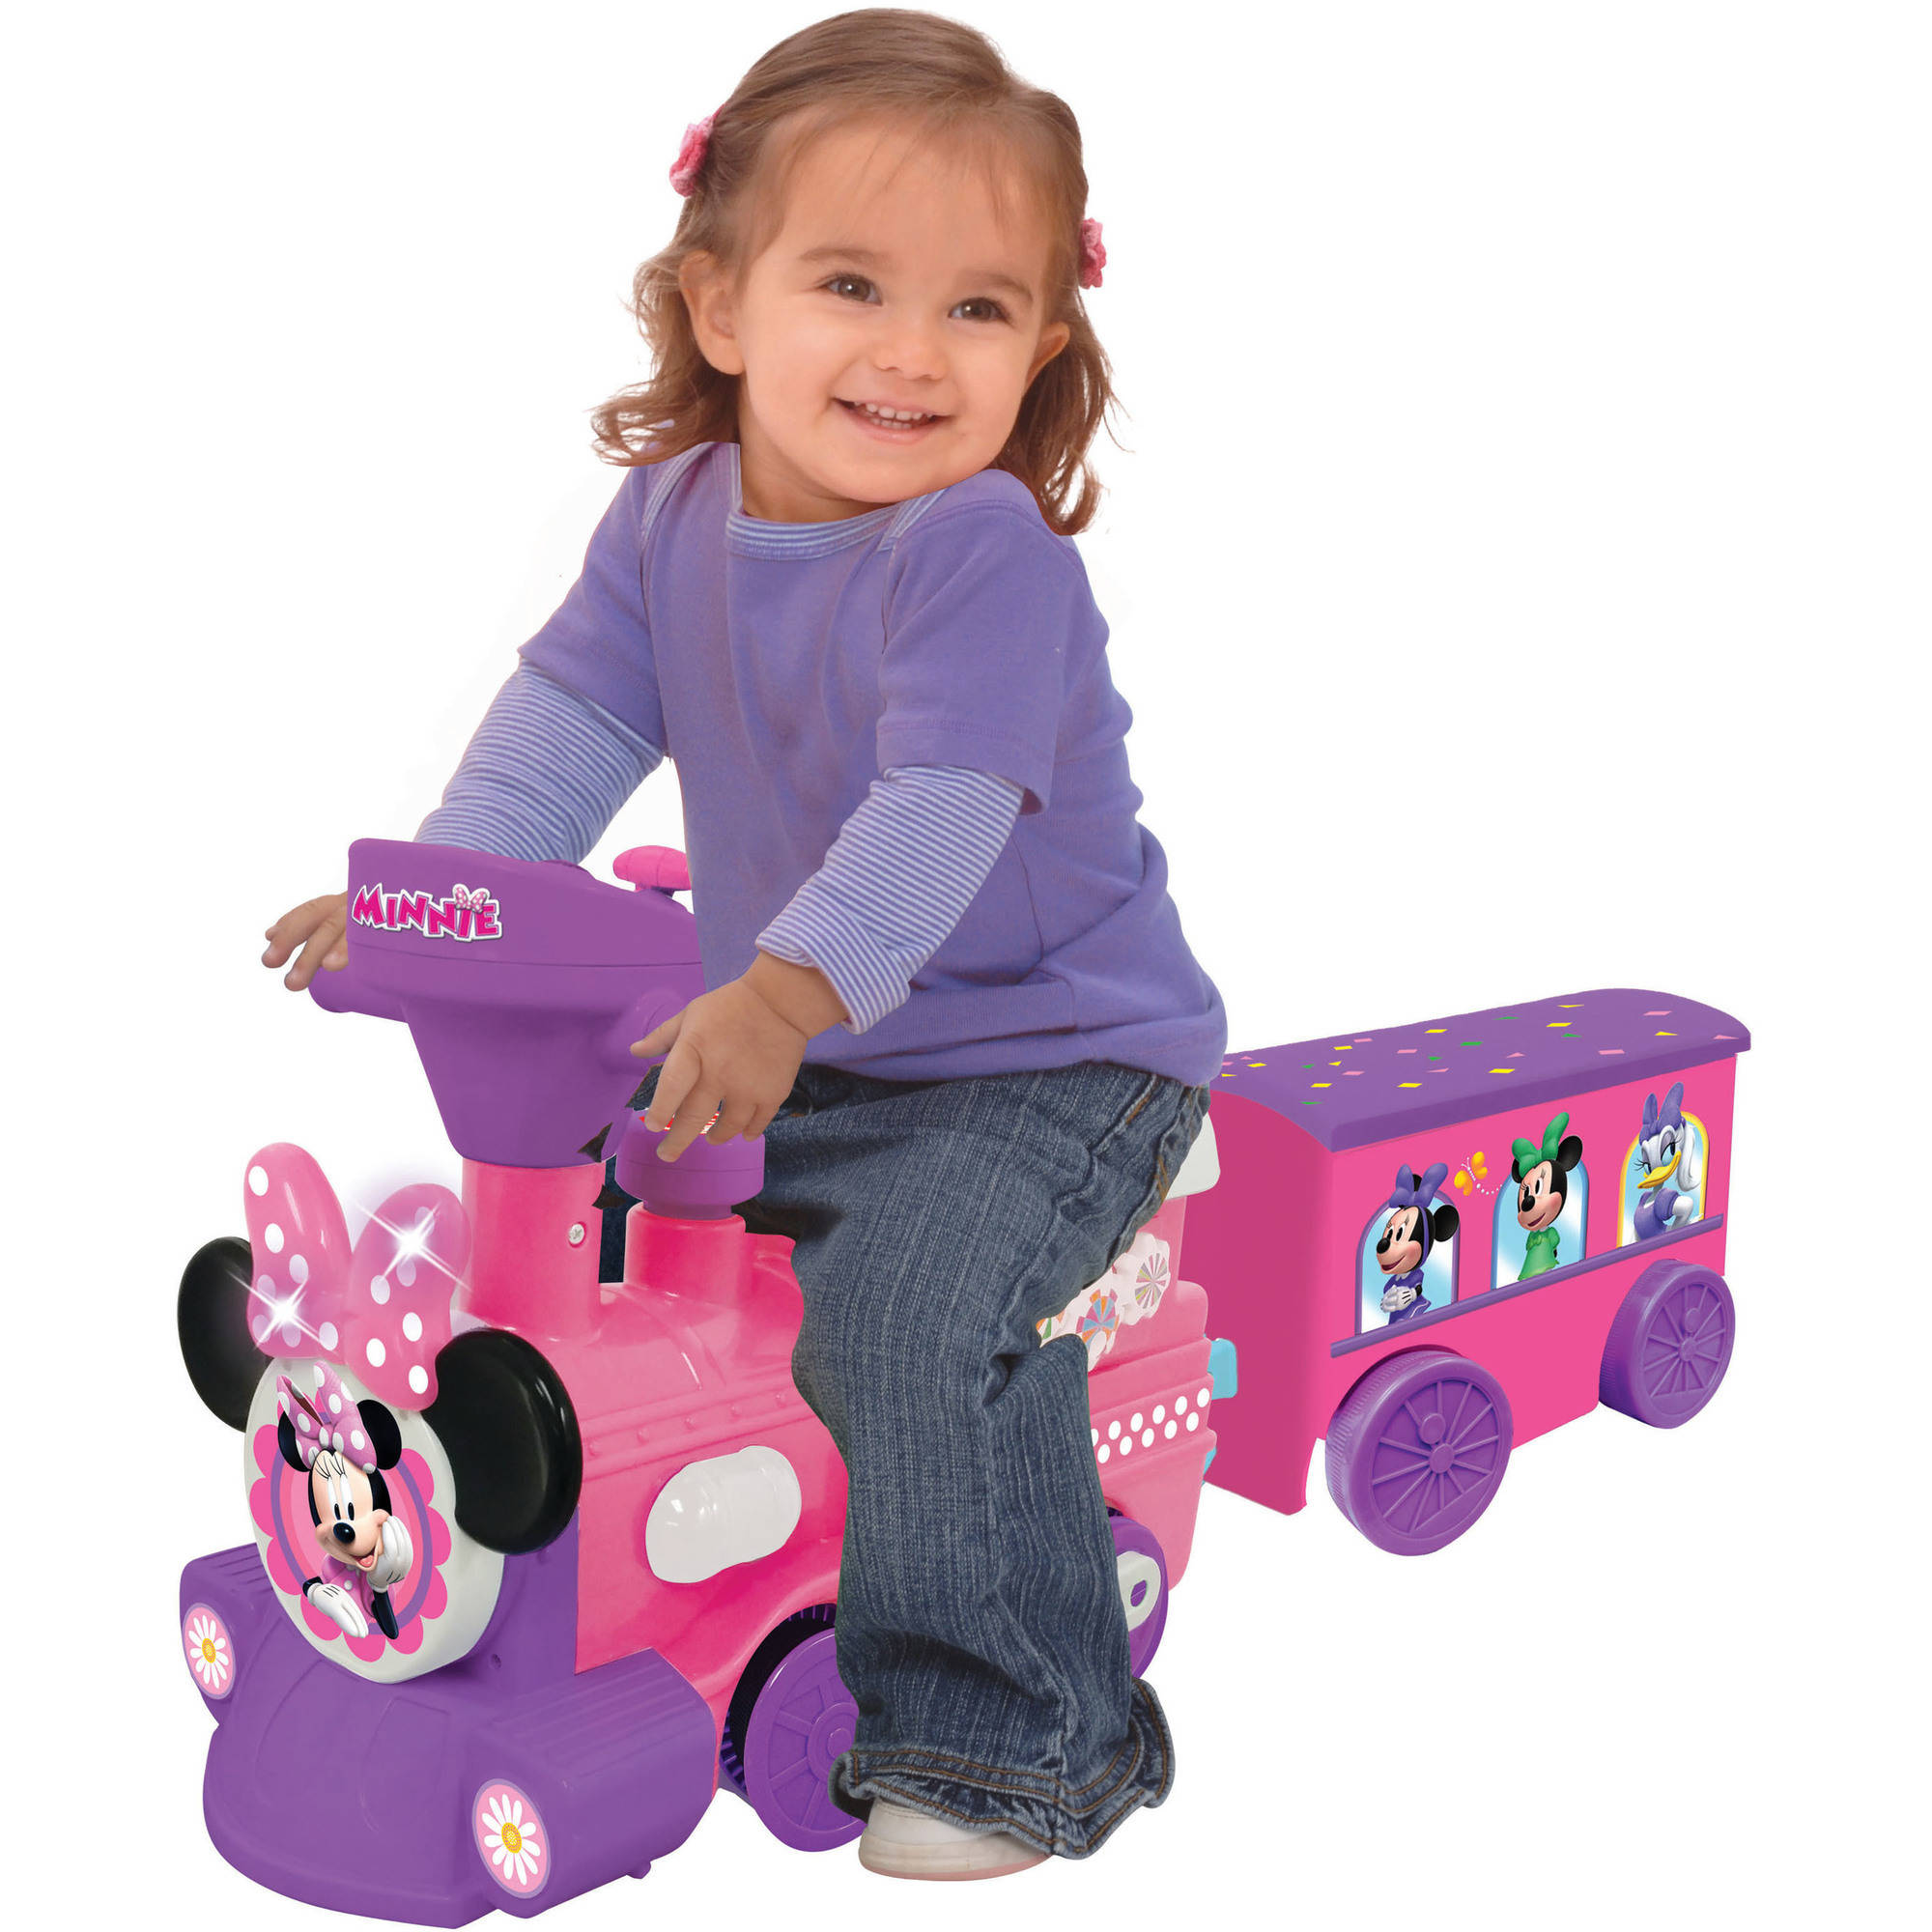 Disney Minnie Mouse 2-in-1 Battery-Powered Train with Trailer